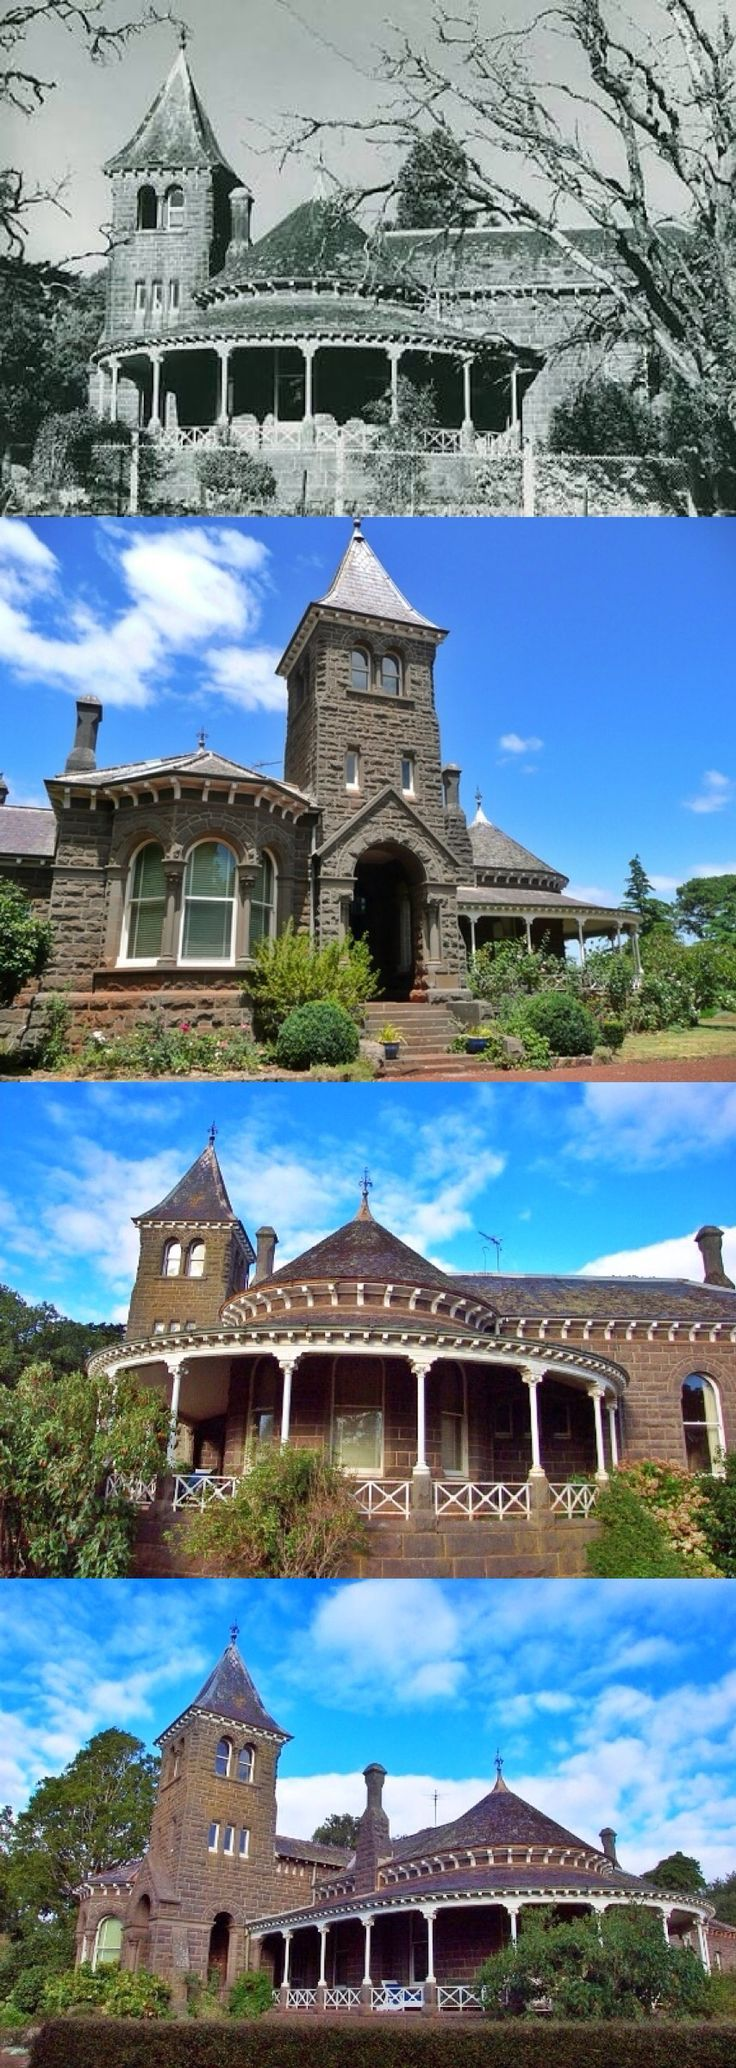 Kolor Homestead, Penshurst (279km W of Melbourne), sits beneath the twin volcanic cones of Mt Rouse and is one of the most picturesque homesteads in the Western District. A large bluestone villa with bluestone outbuildings, it is set in a well-established garden with extended parkland. In 1838, John Cox took up the Mount Rouse run which was to become Kolor. The government soon evicted him to set up the Mount Rouse Aboriginal Protectorate comprising 100 sq miles centred on the mountain. But…